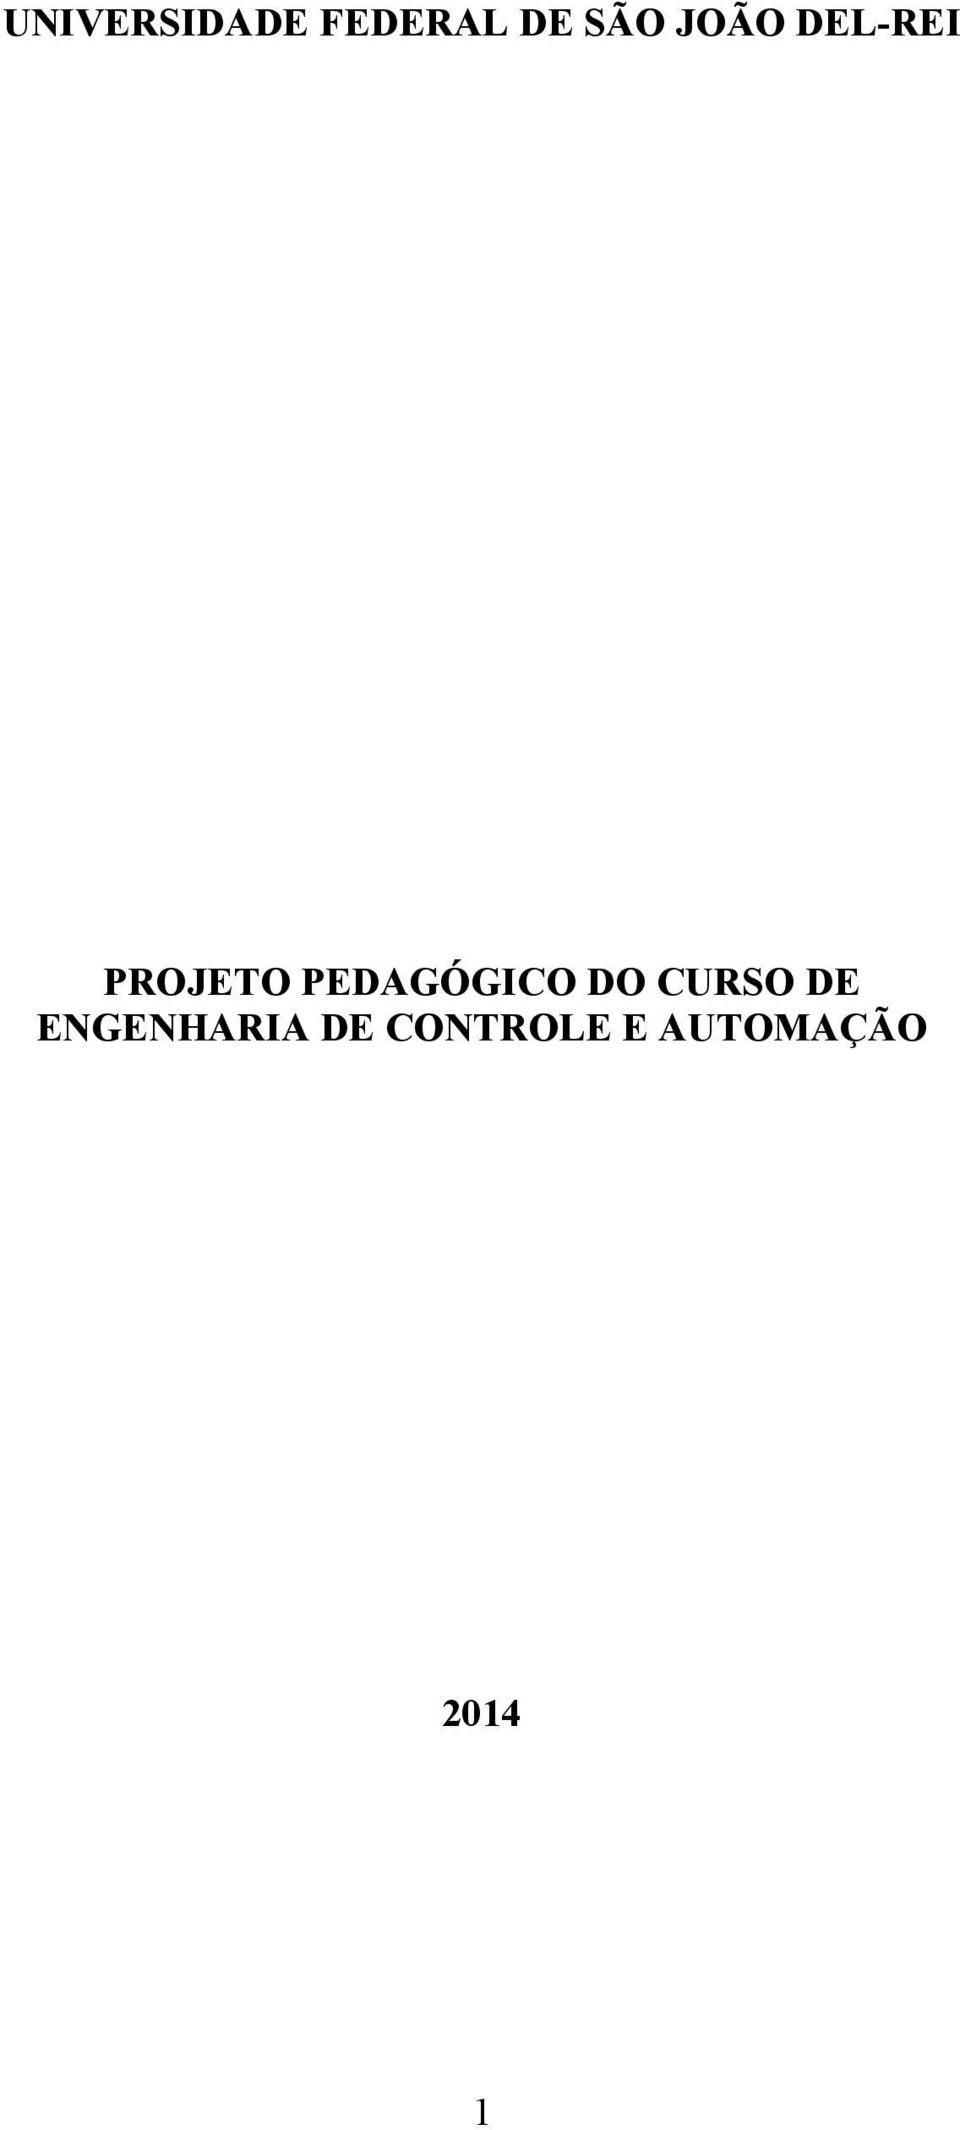 PEDAGÓGICO DO CURSO DE